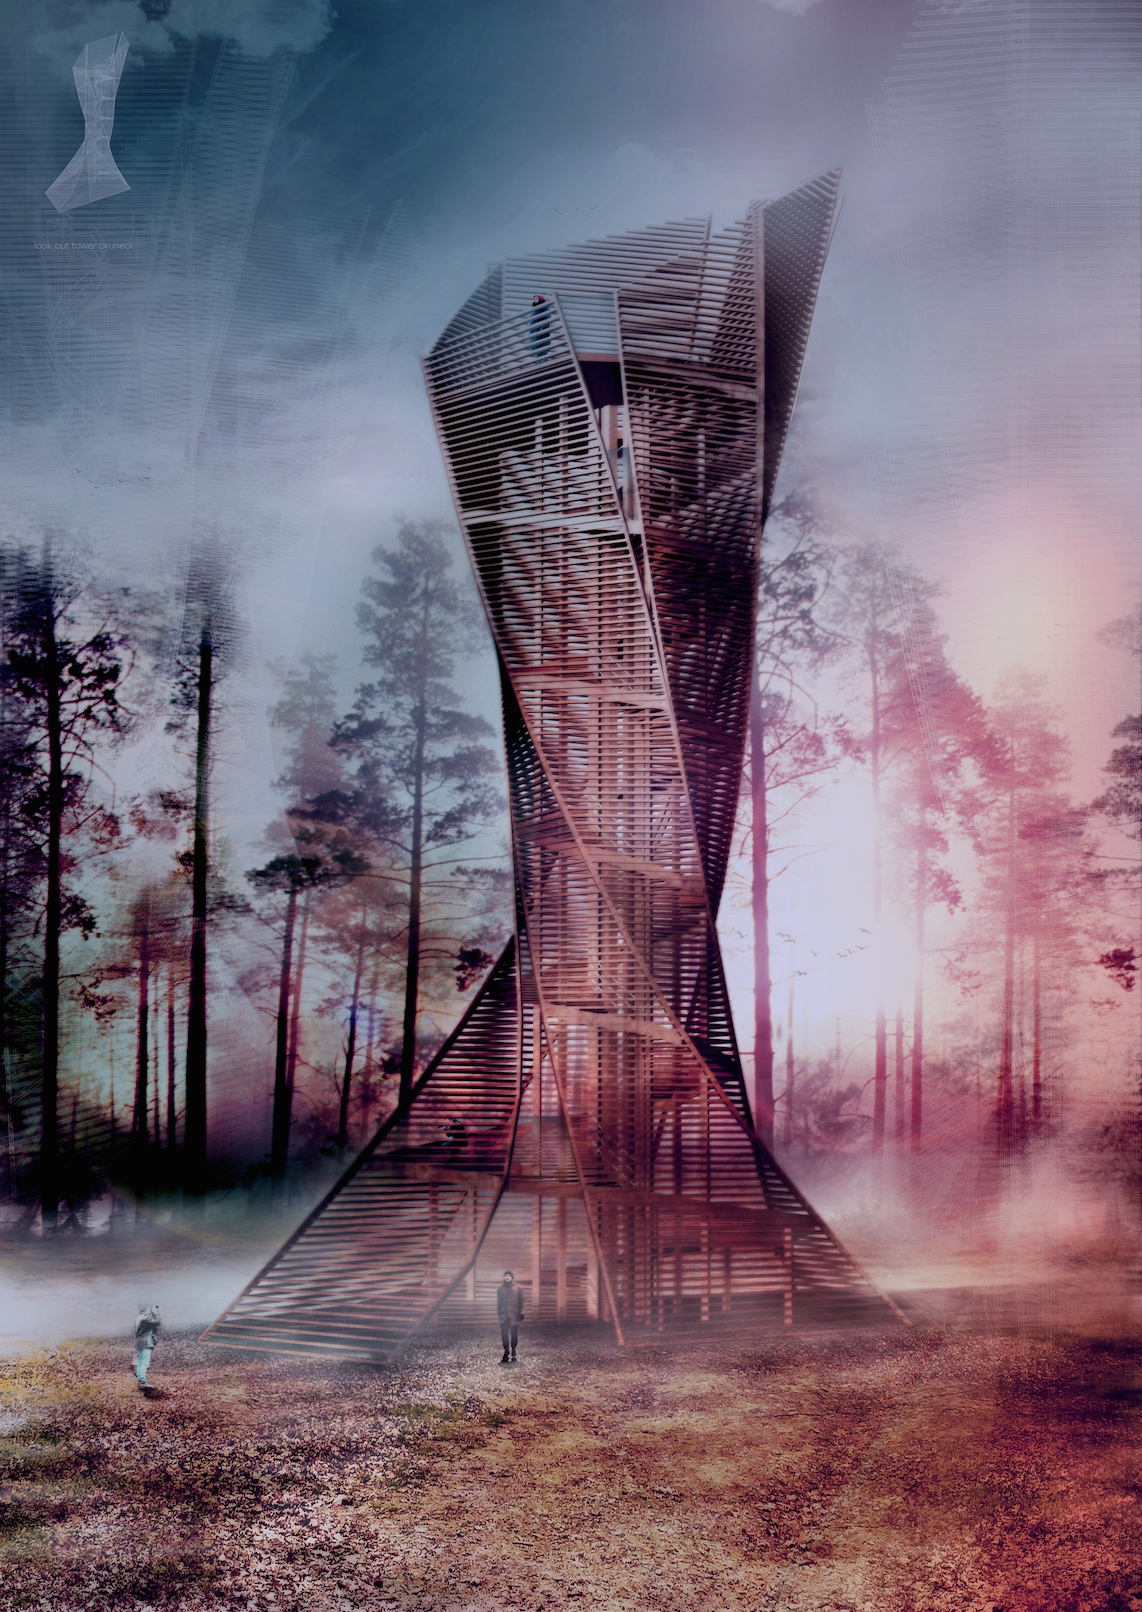 Wooden Look Out Tower In Italy Evolo Architecture Magazine